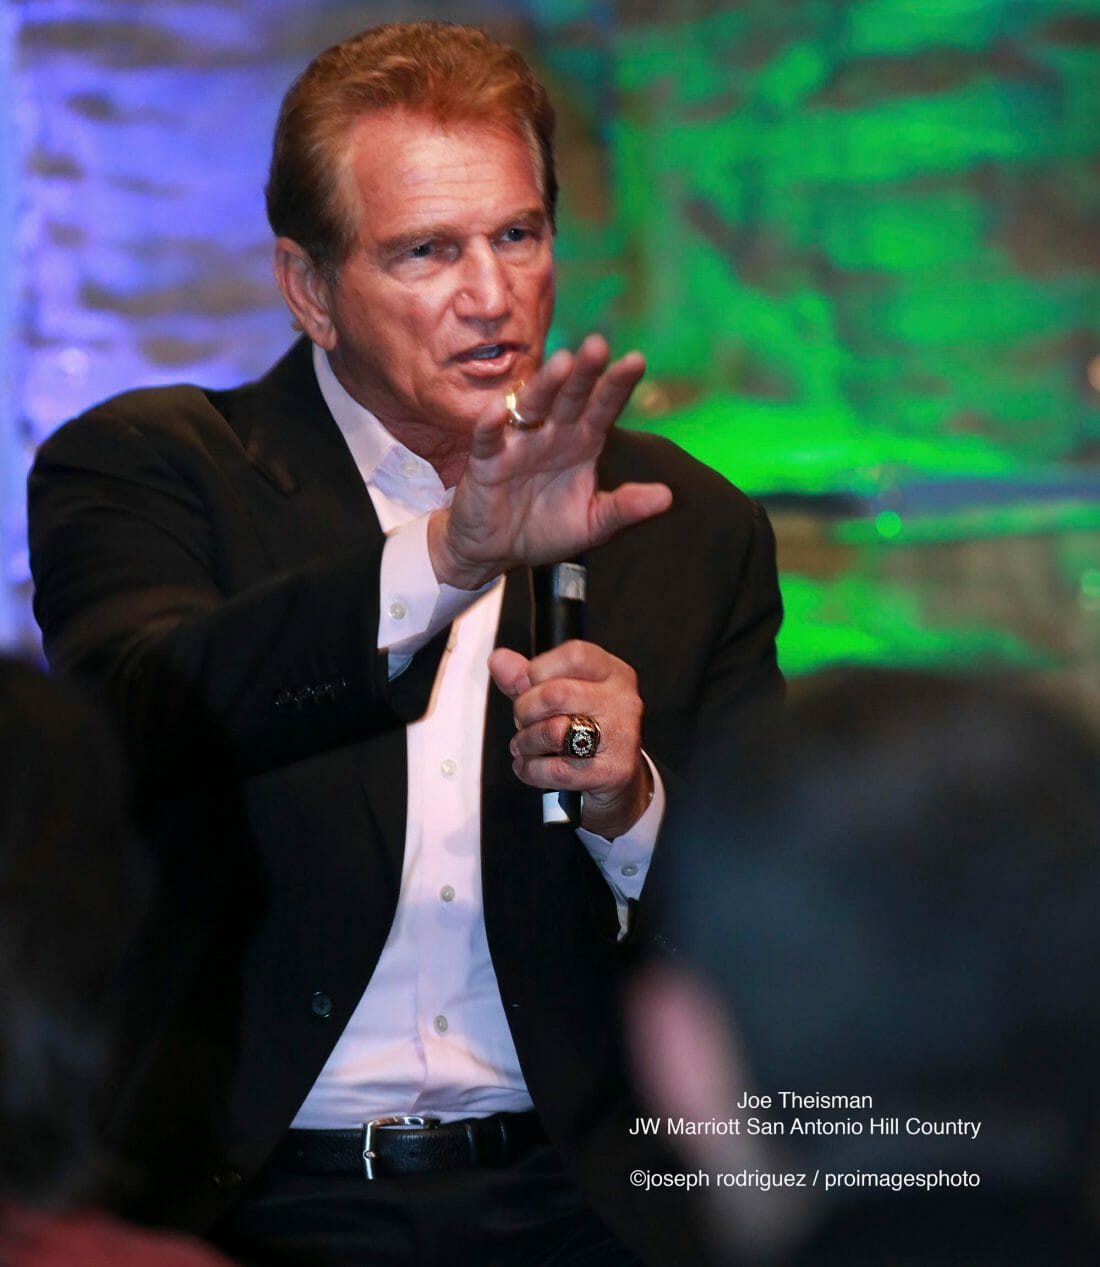 San Antonio Convention Photography of Joe Theismann Guest Speaker at JW Marriott Hill Country Resort